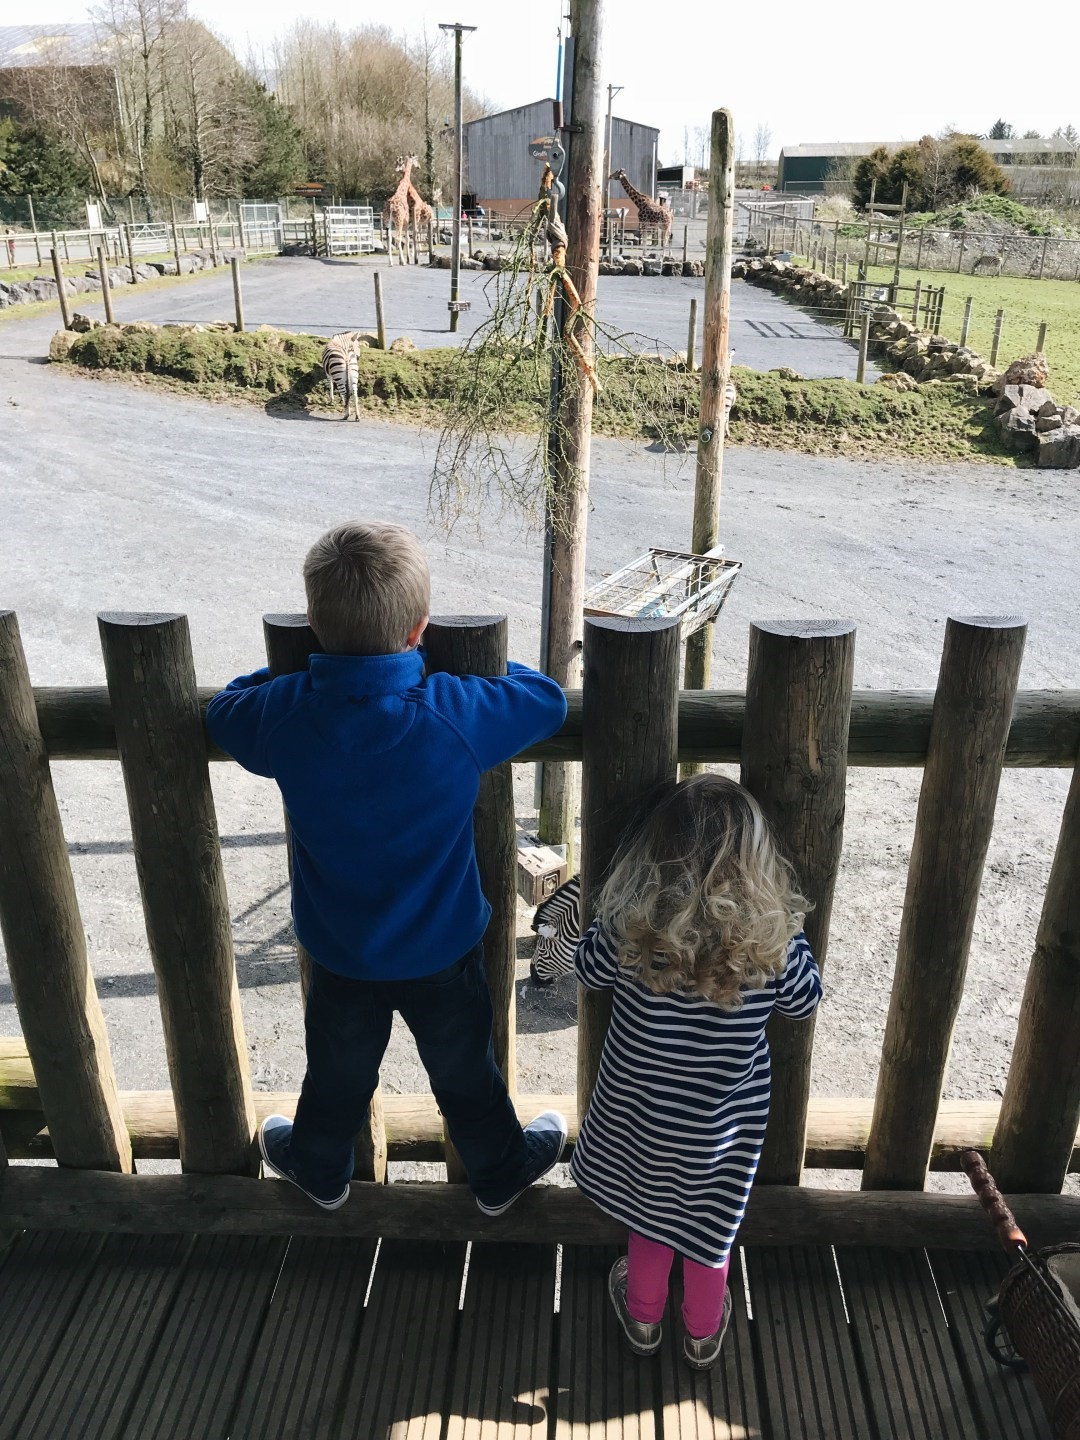 Children watching giraffes